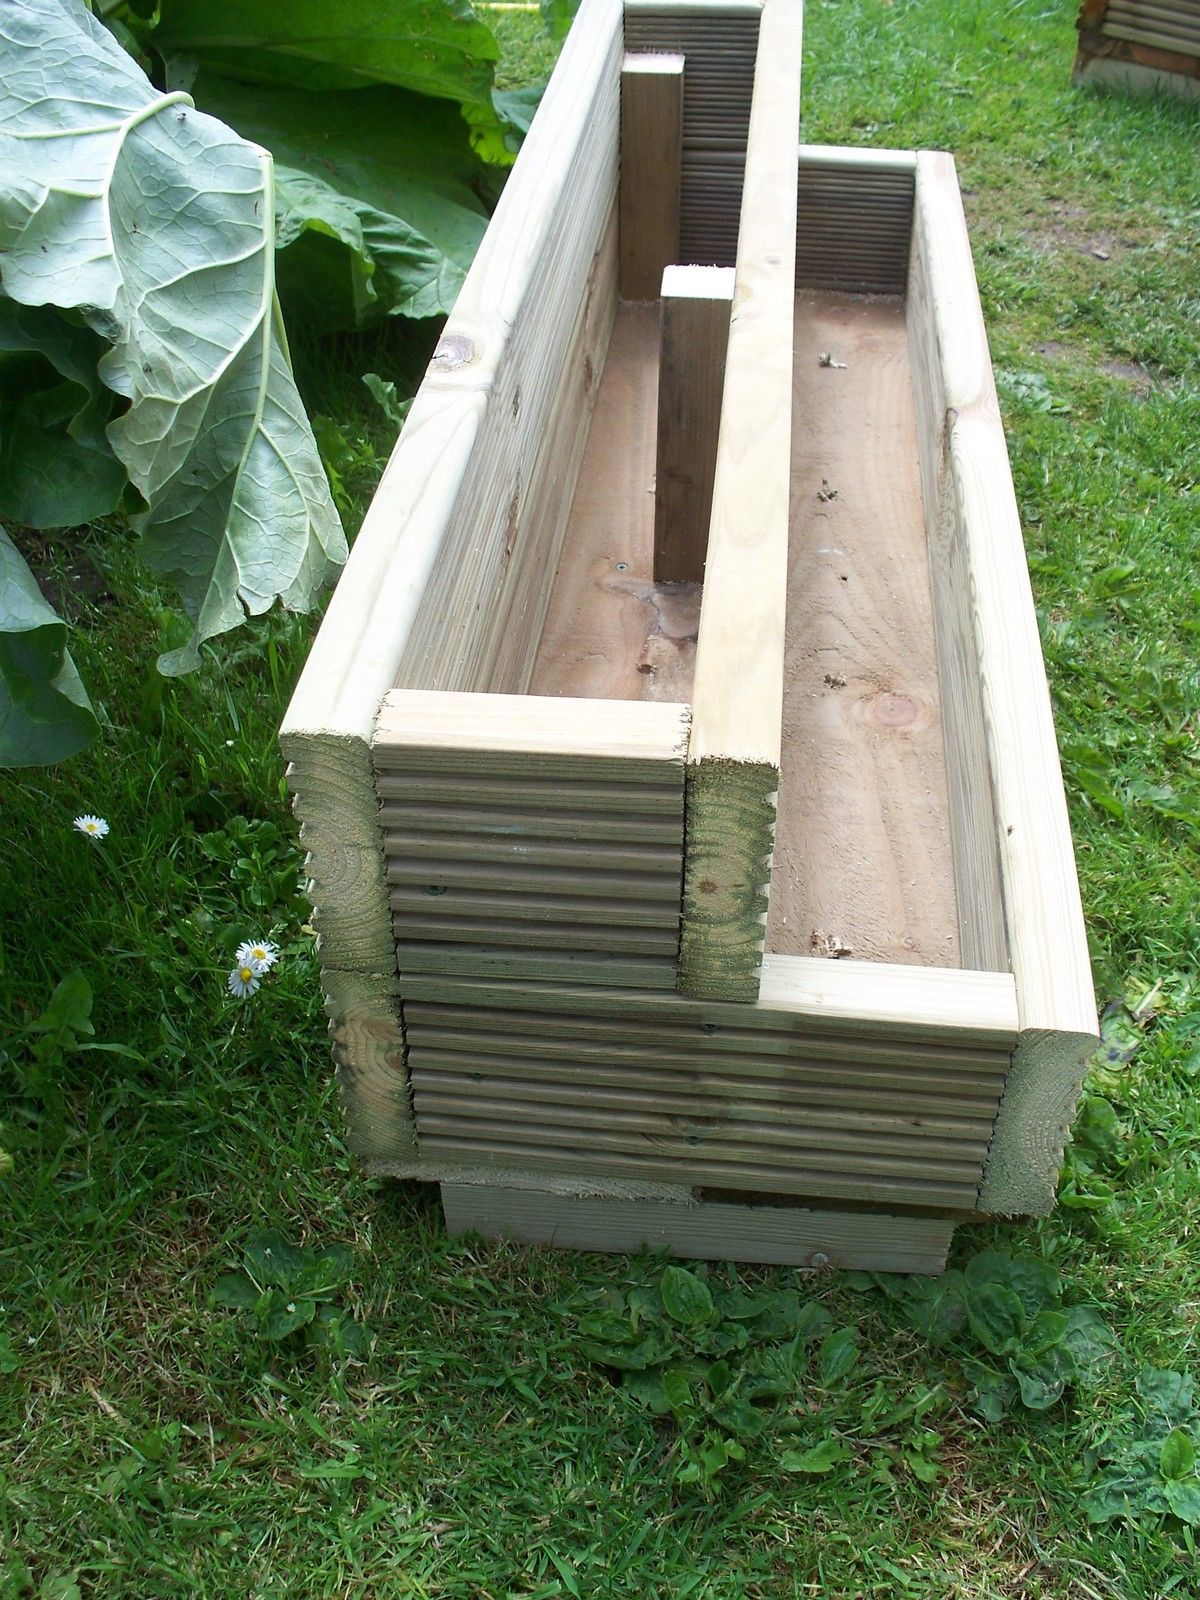 Two tiered wooden decking step garden planter, wood trough, timber on ebay garden ornaments, ebay garden tractors, ebay garden shrubs, ebay garden sprayers, ebay lighting, ebay garden art, ebay garden sculpture, ebay garden seeders, ebay garden plates, ebay garden plants, ebay garden benches, ebay garden tillers, ebay bird feeders, ebay jewelry, ebay garden fences, ebay raised garden beds, ebay garden cultivators, ebay garden statues, ebay garden accessories, ebay garden tools,